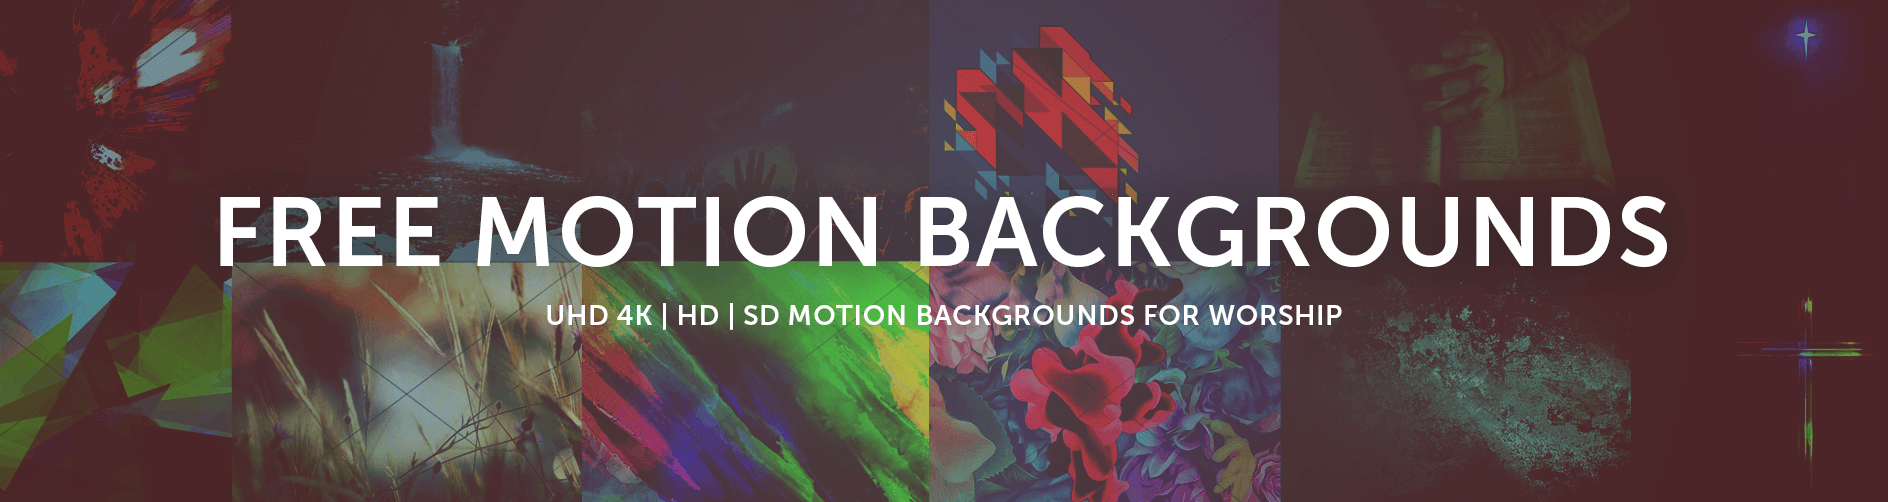 Free Motion Backgrounds